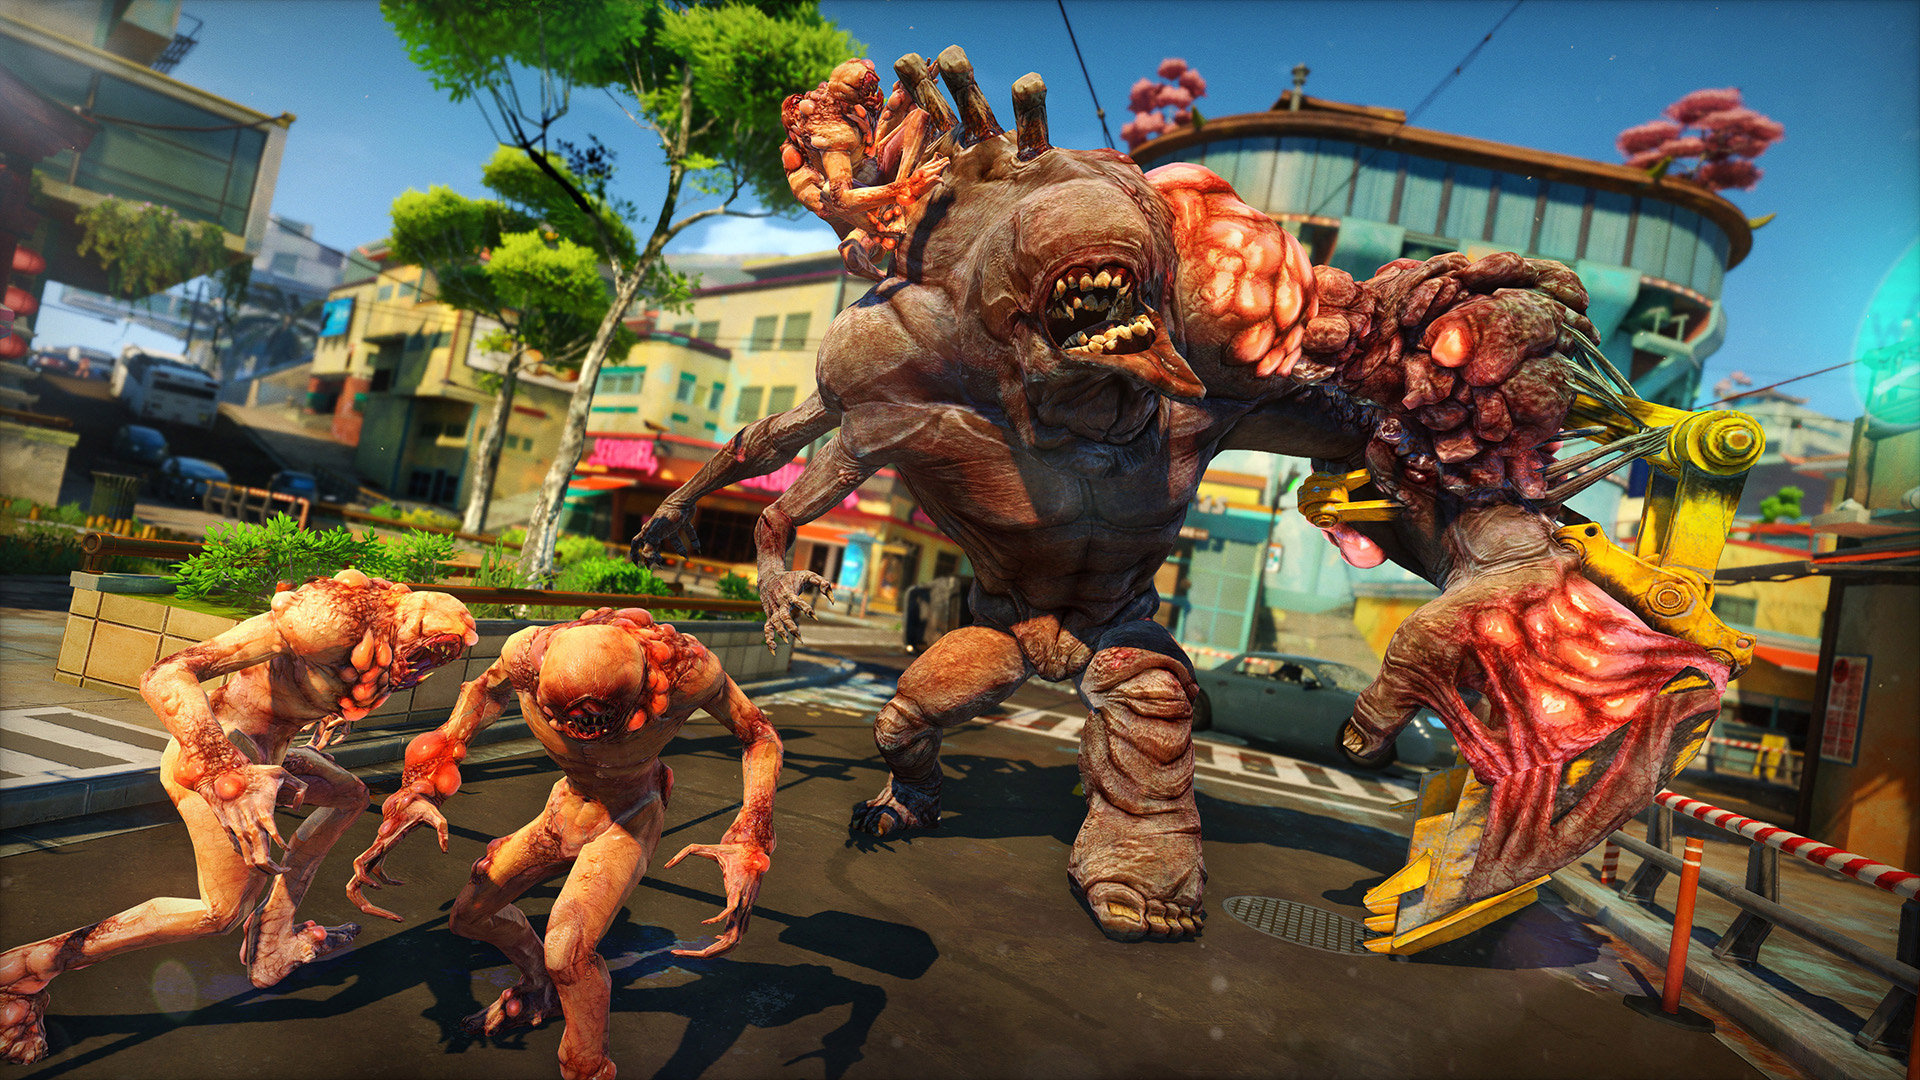 Tear into Sunset Overdrive and play like a pro with these tips